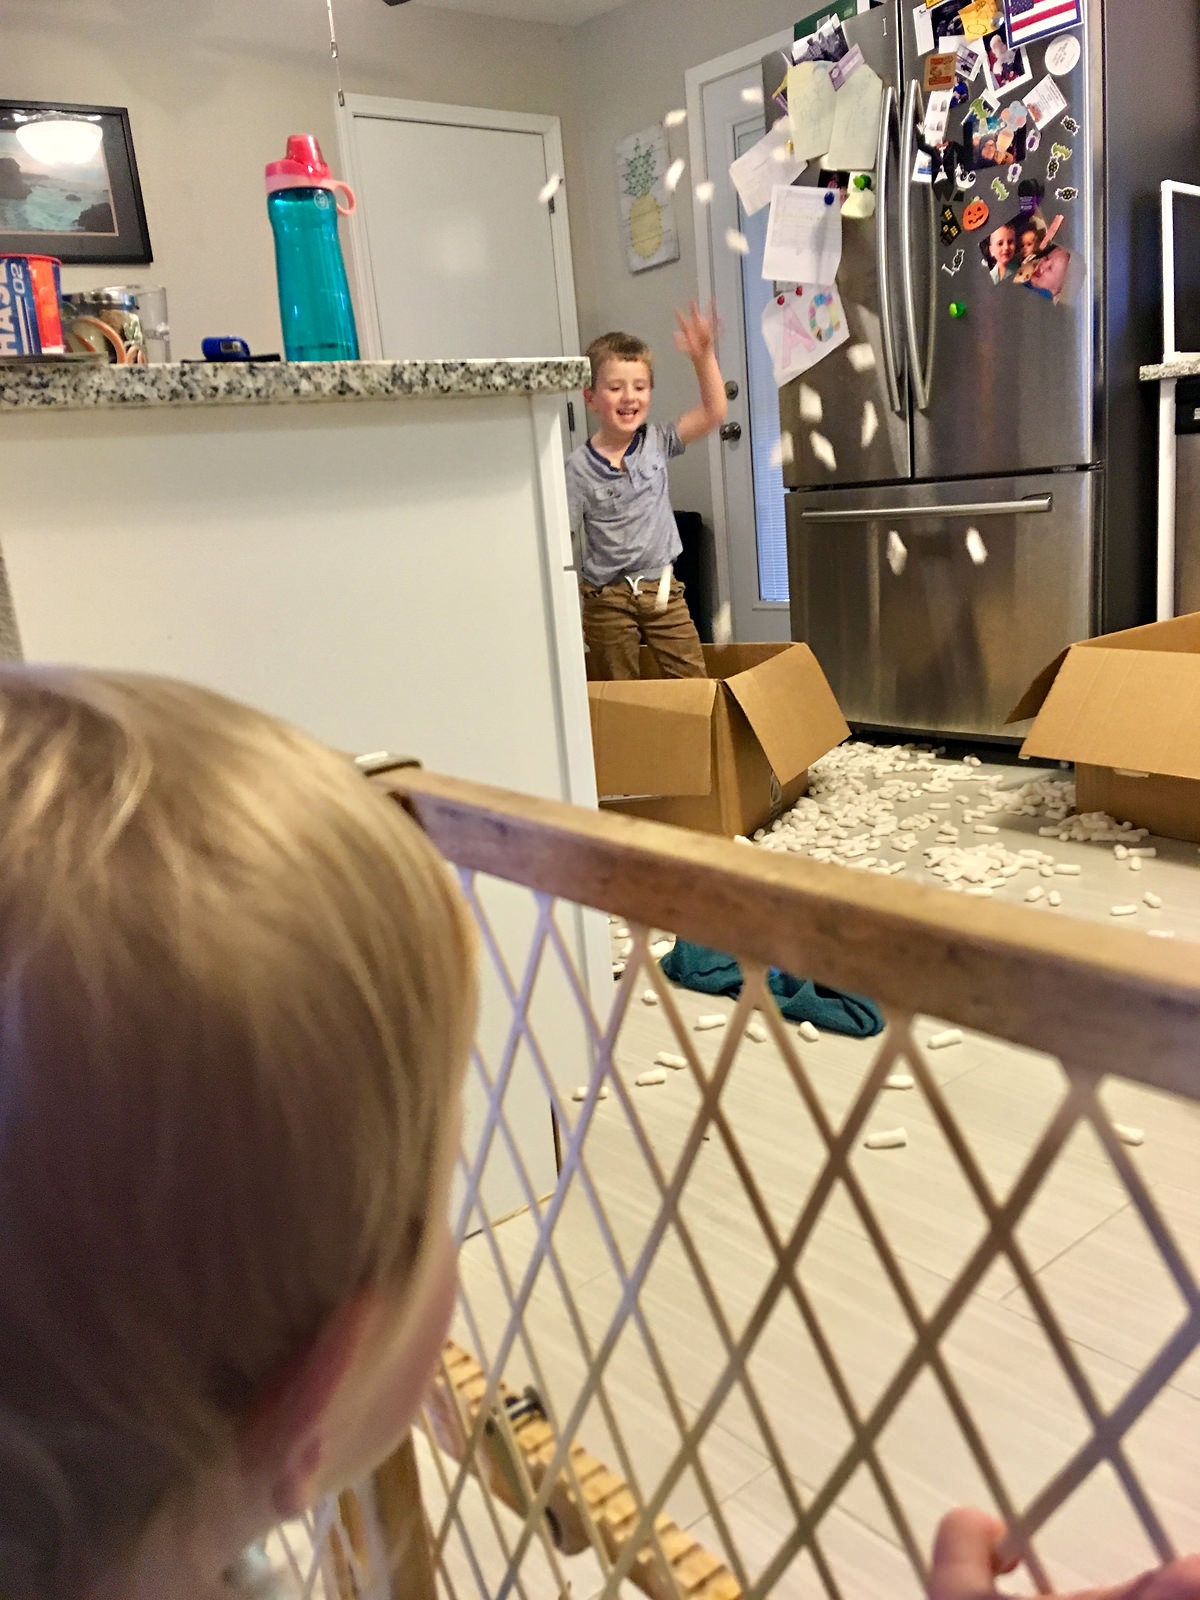 boy-throwing-packing-peanuts-all-over-white-kitchen